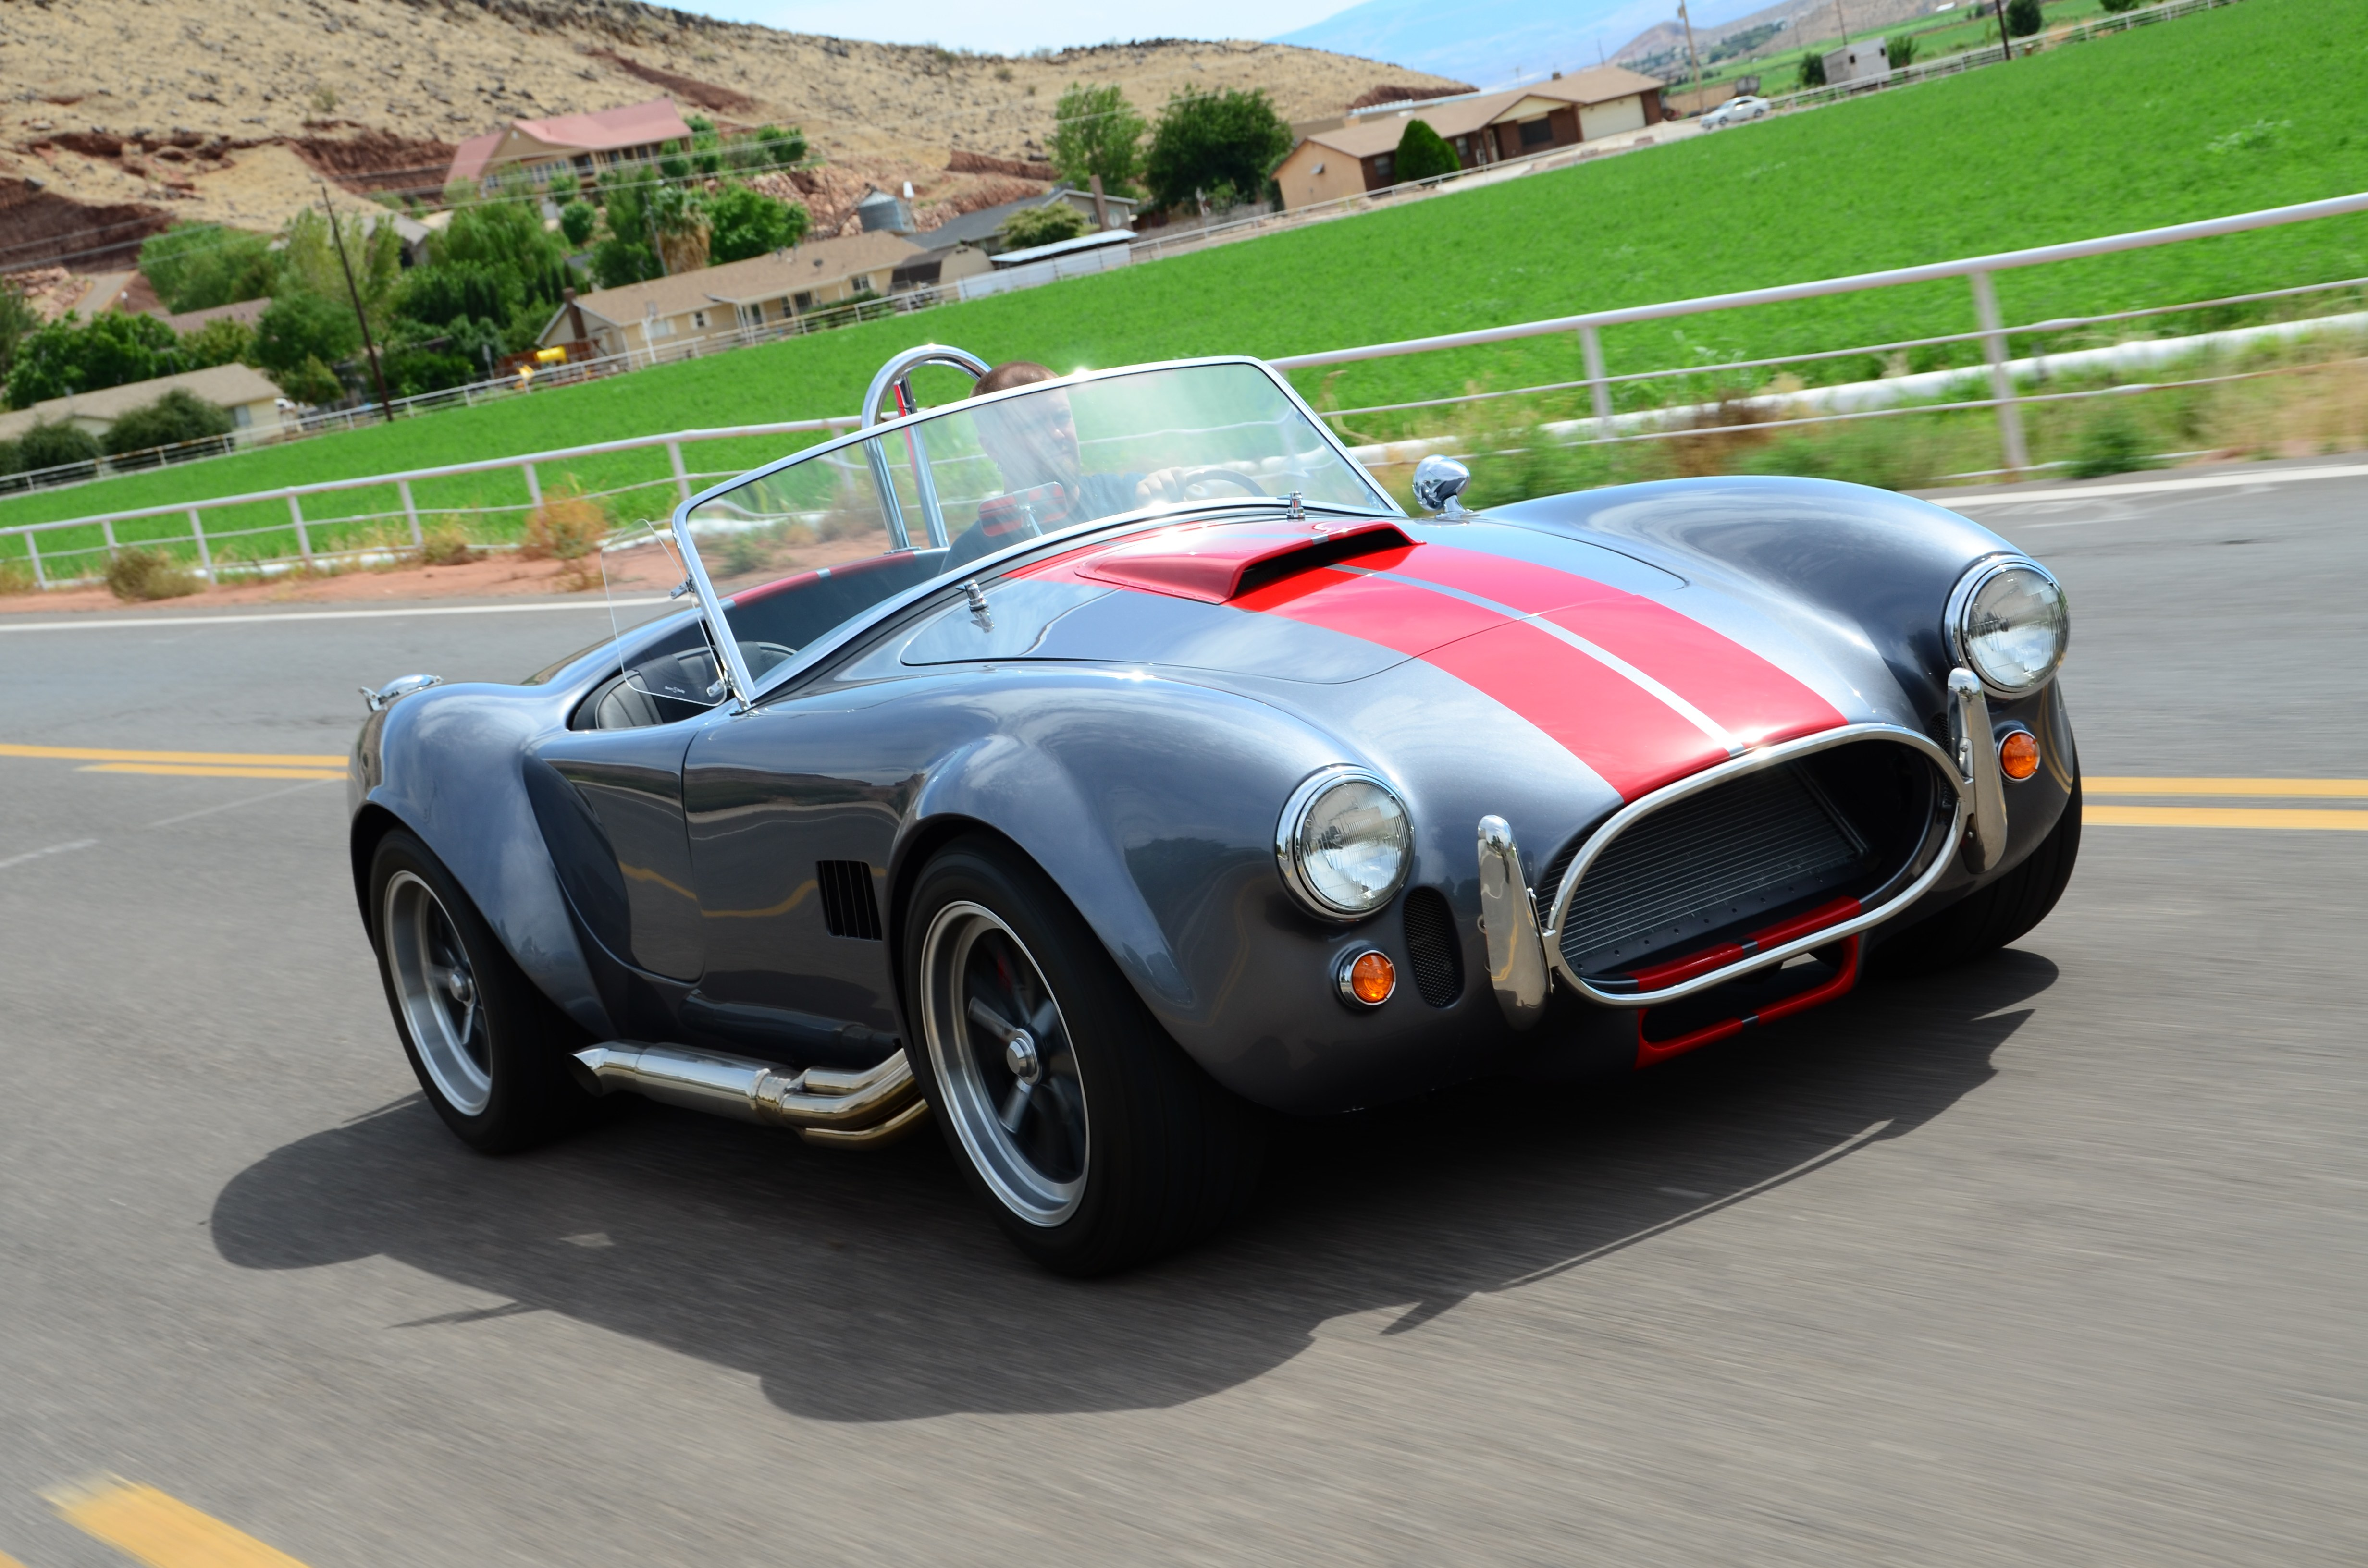 Build A Factory Five Mk4 Roadster By The Book With Parts